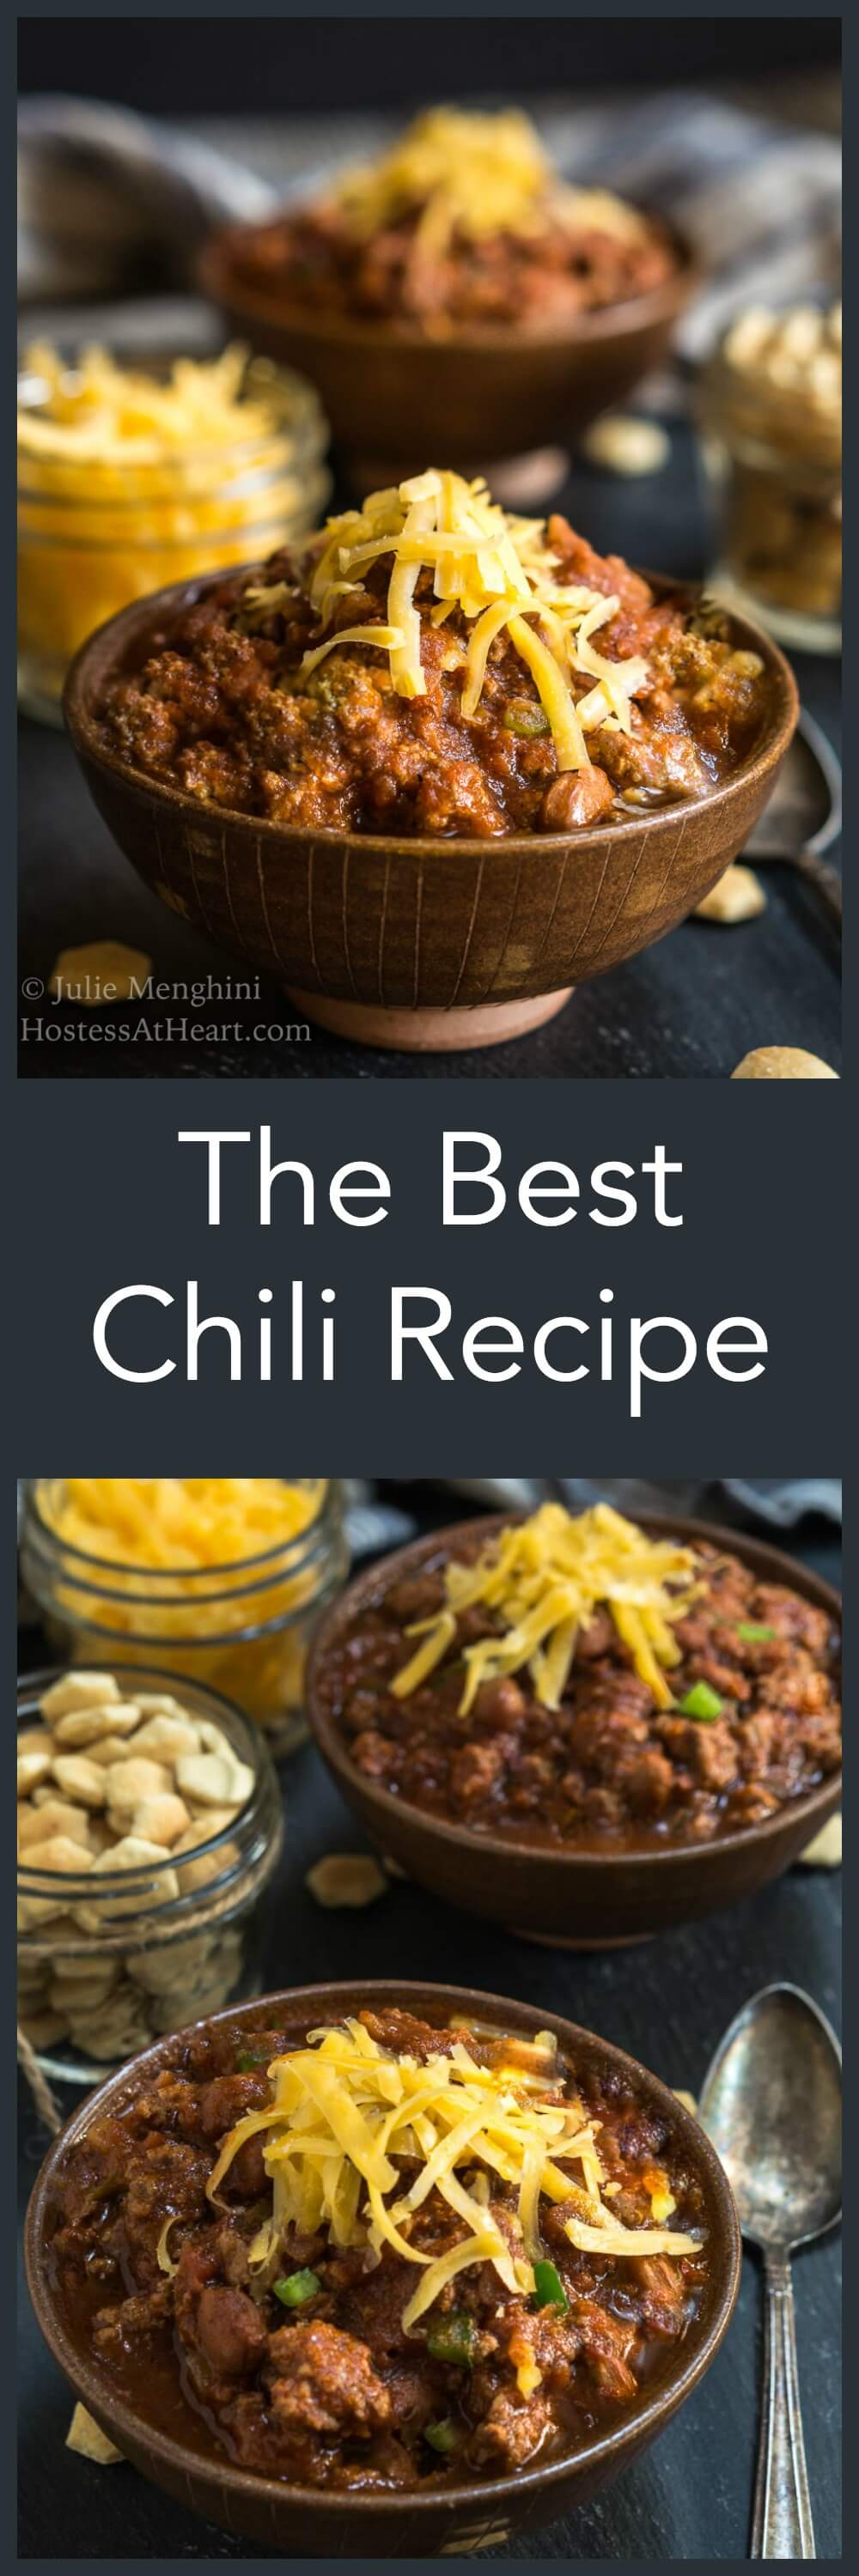 The Best Chili Recipe will change the way you make chili from now on. It has a secret ingredient that takes this dish to the next level. It's easy to make and makes enough for a crowd | HostessAtHeart.com #chili #chilirecipe #homemadesoup #souprecipes  homemade chili from scratch, easy chili recipe, easy beef chili